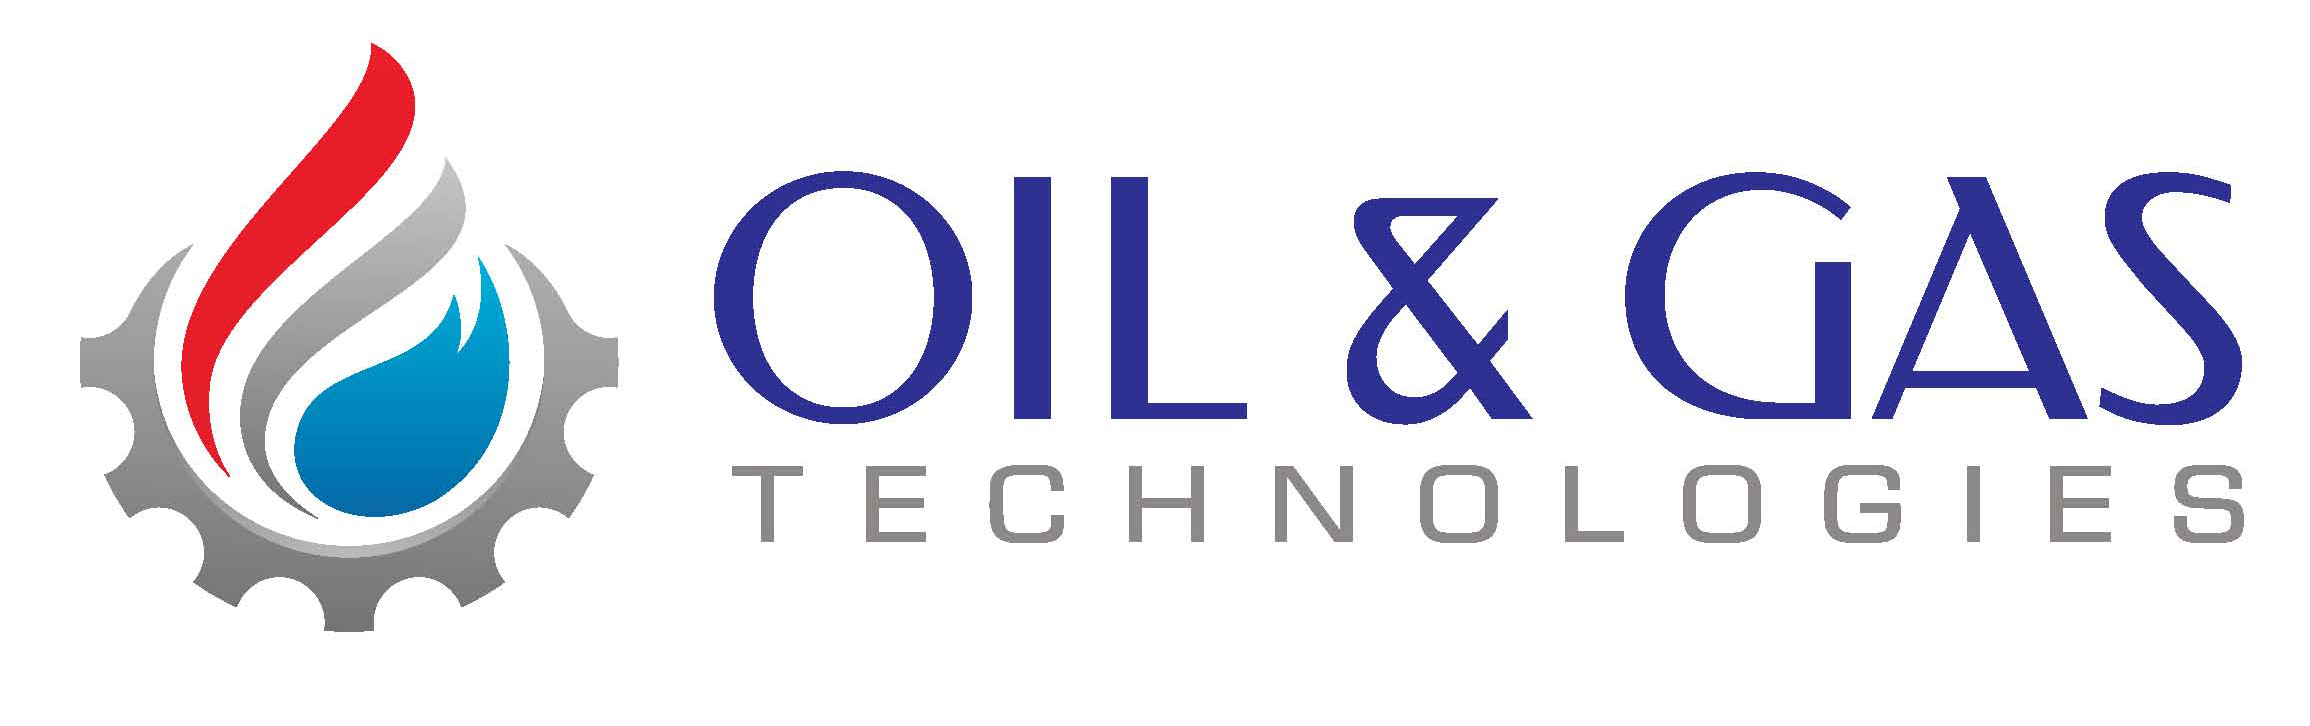 Oil Gas Technologies